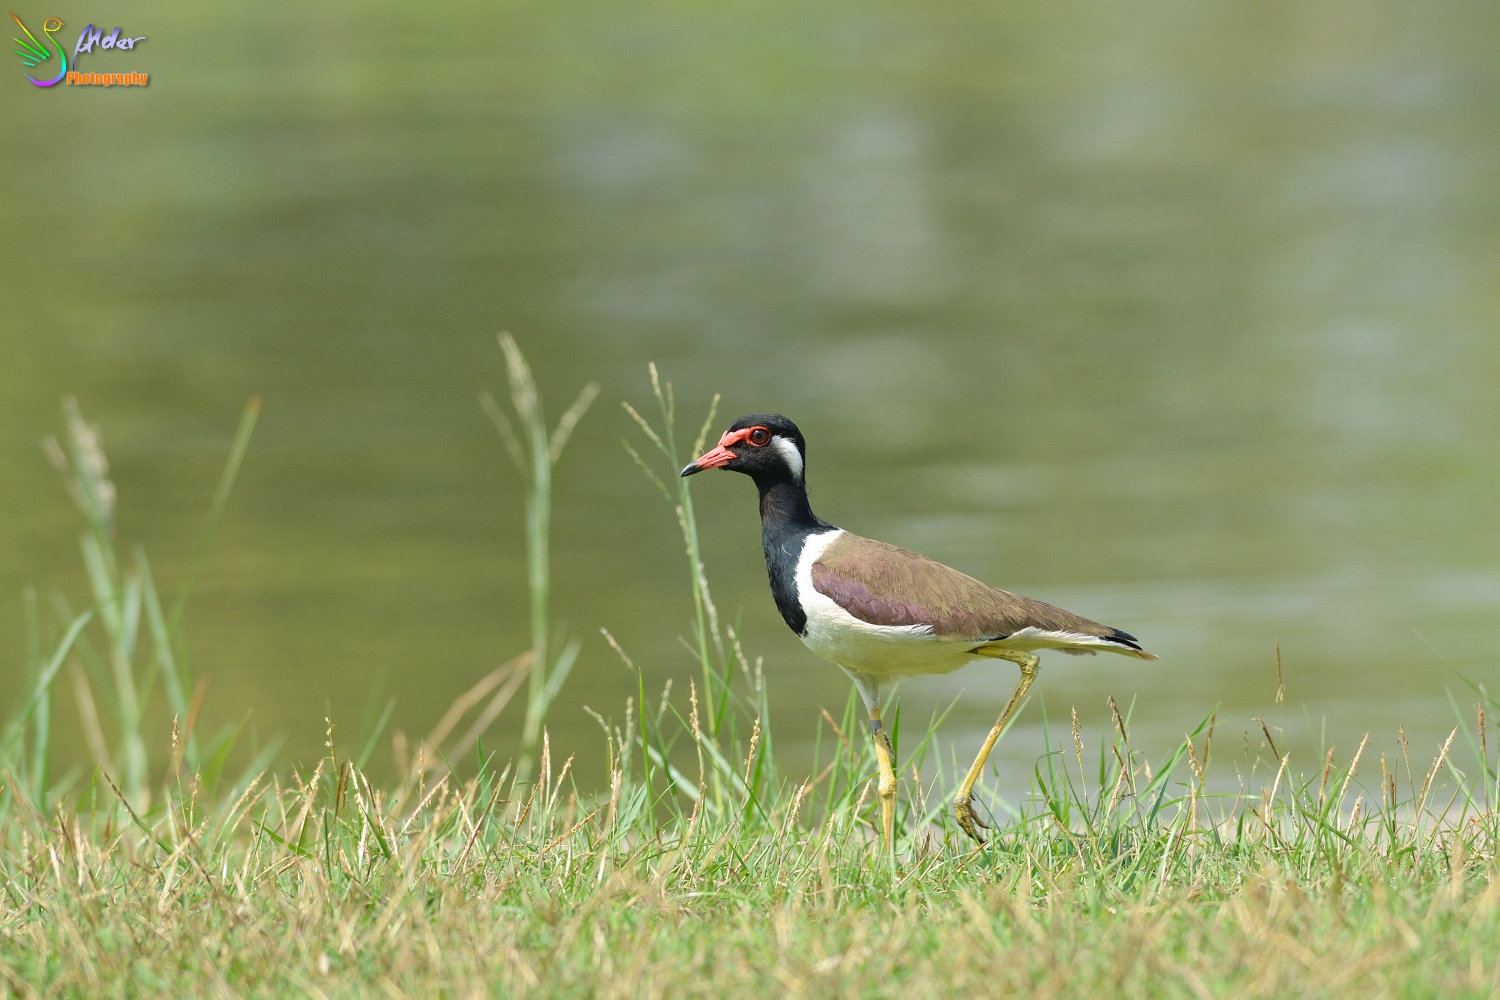 Red-wattled_Lapwing_9608_IJFR